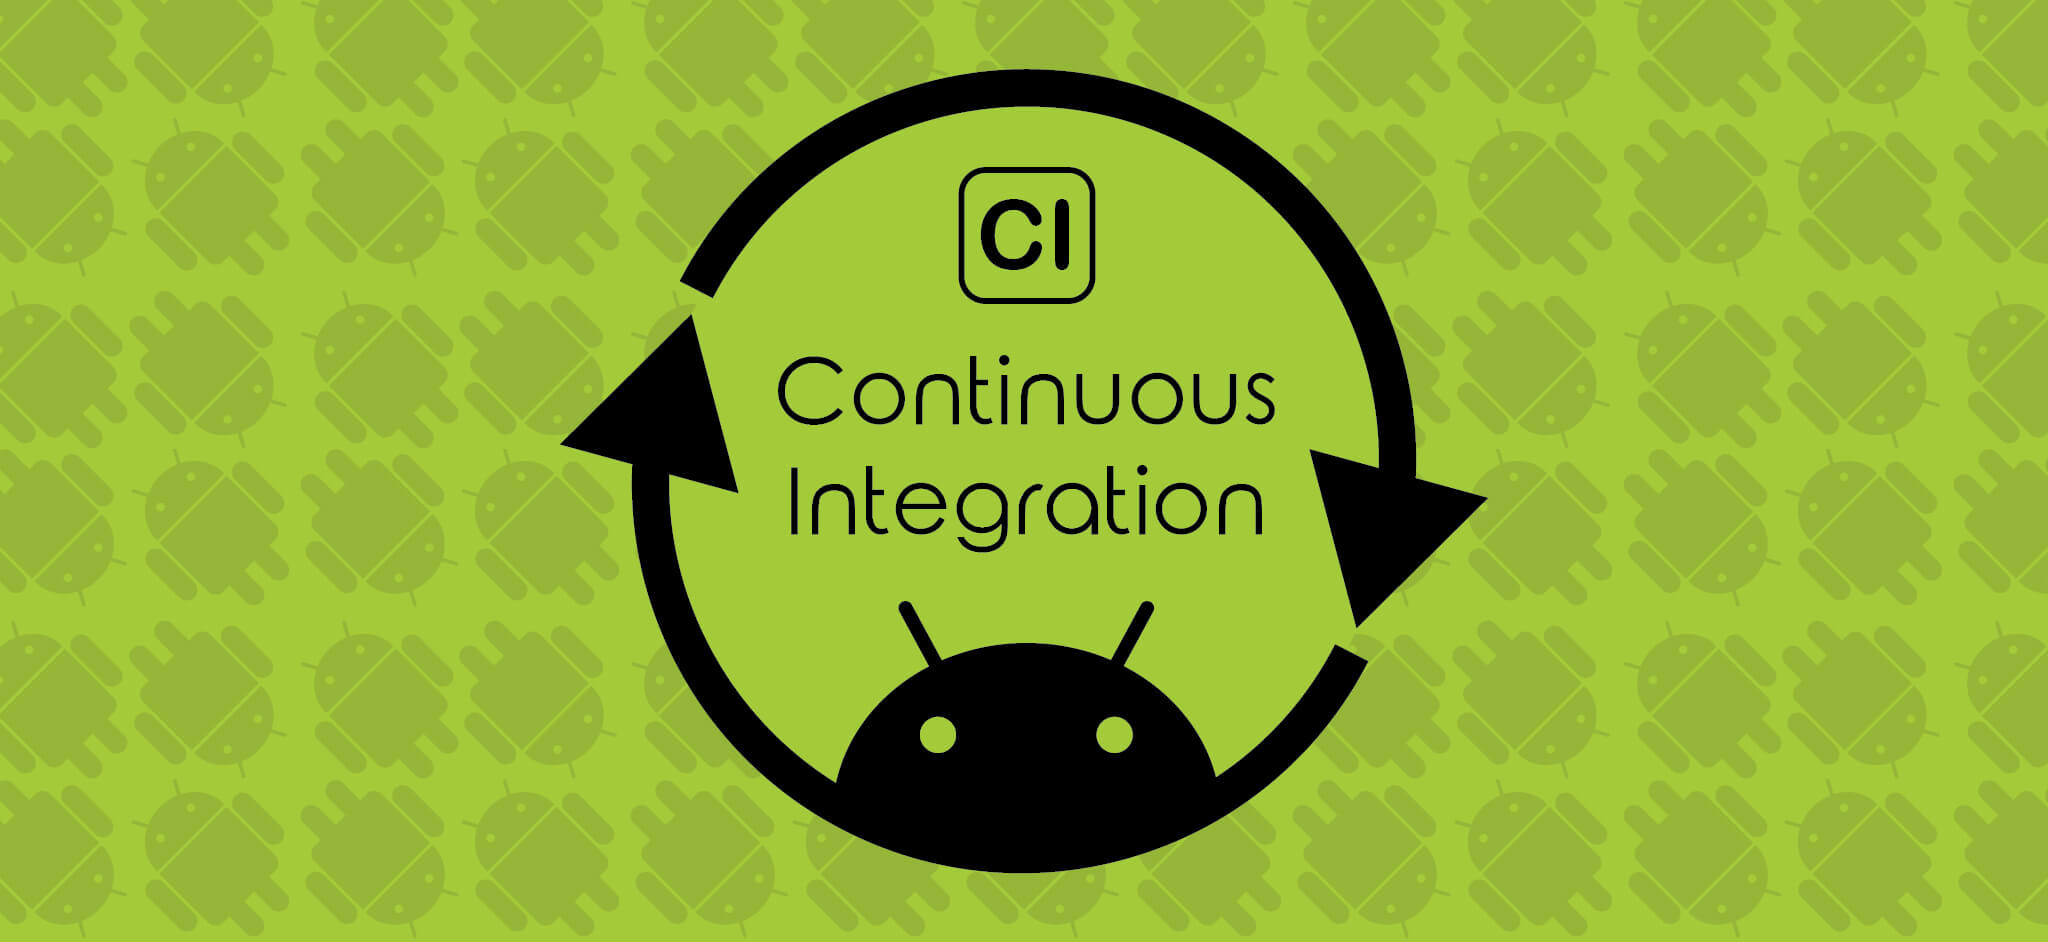 Continuous Integration - Android